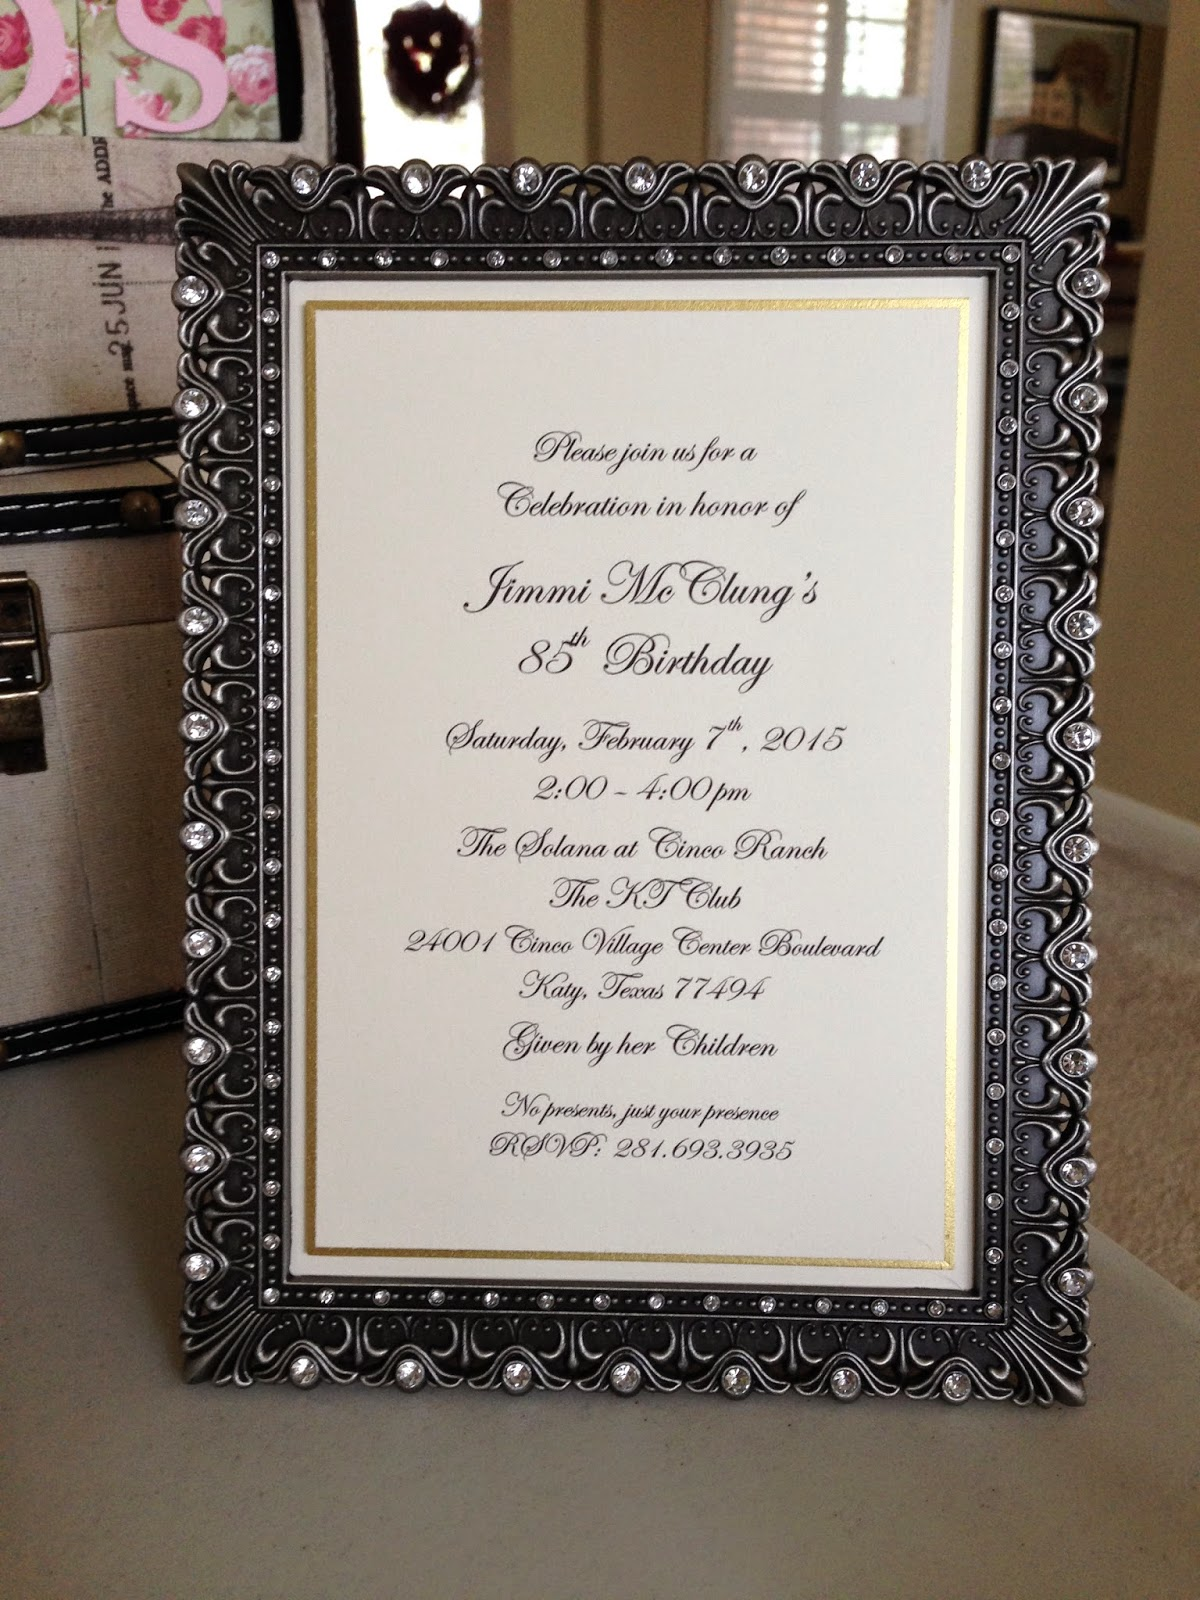 I Mounted It Onto Card Stock Outlined With Pearls And Placed Into A Vintage Frame Think Looks Very Classy